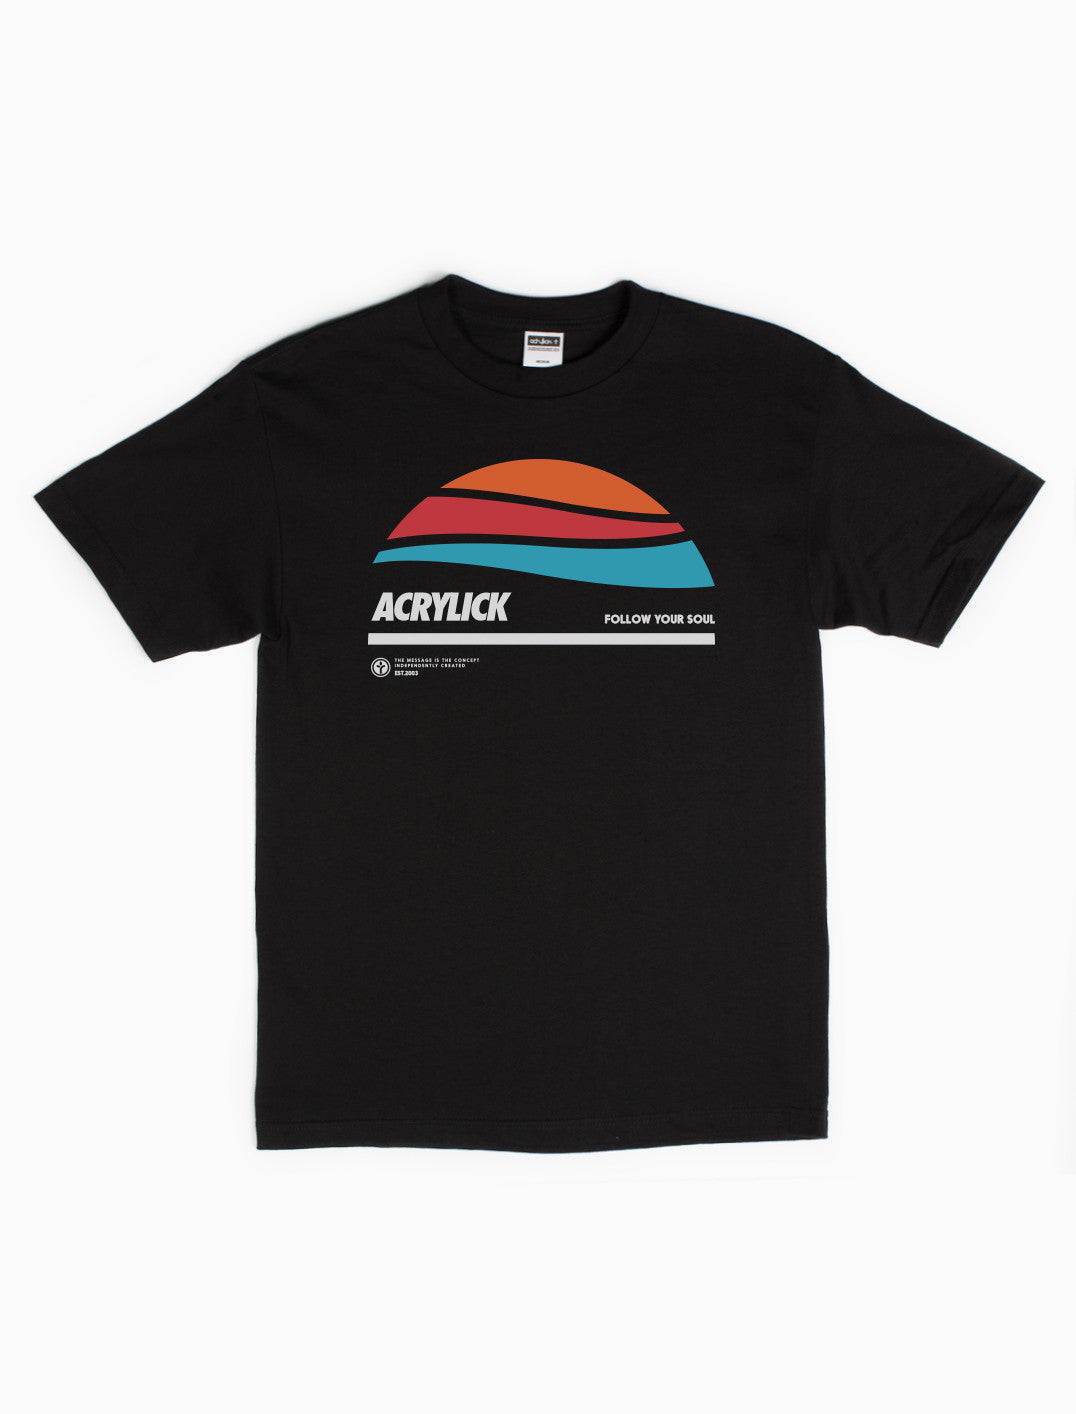 Acrylick - Horizon Tee - Sunset Tee - Sunrise Tee - Mens